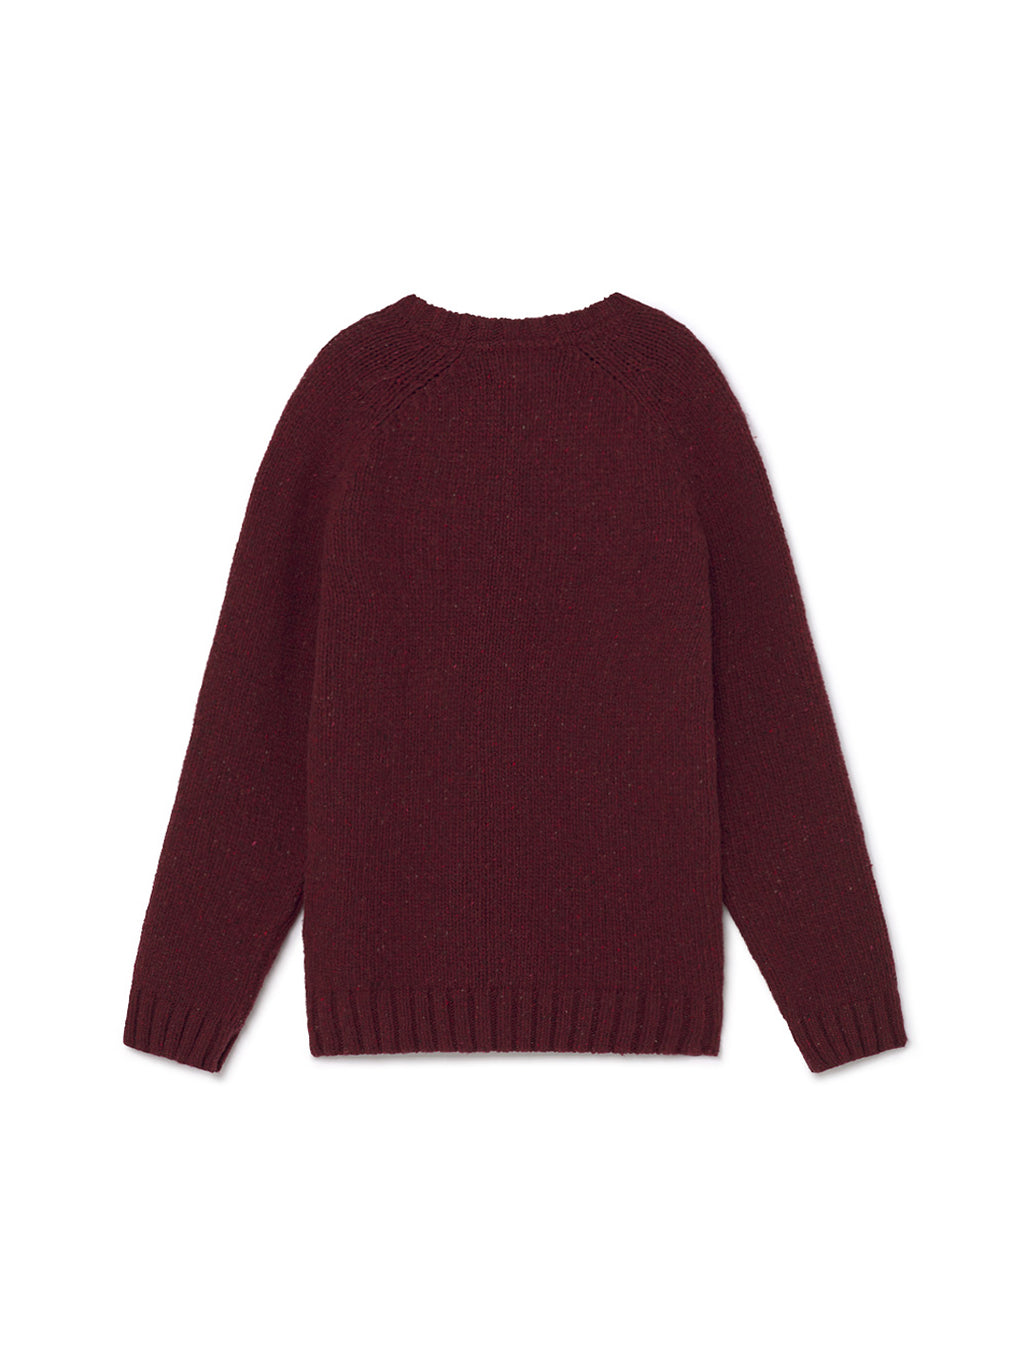 TWOTHIRDS Mens Knit: Jurmo - Burgundy back